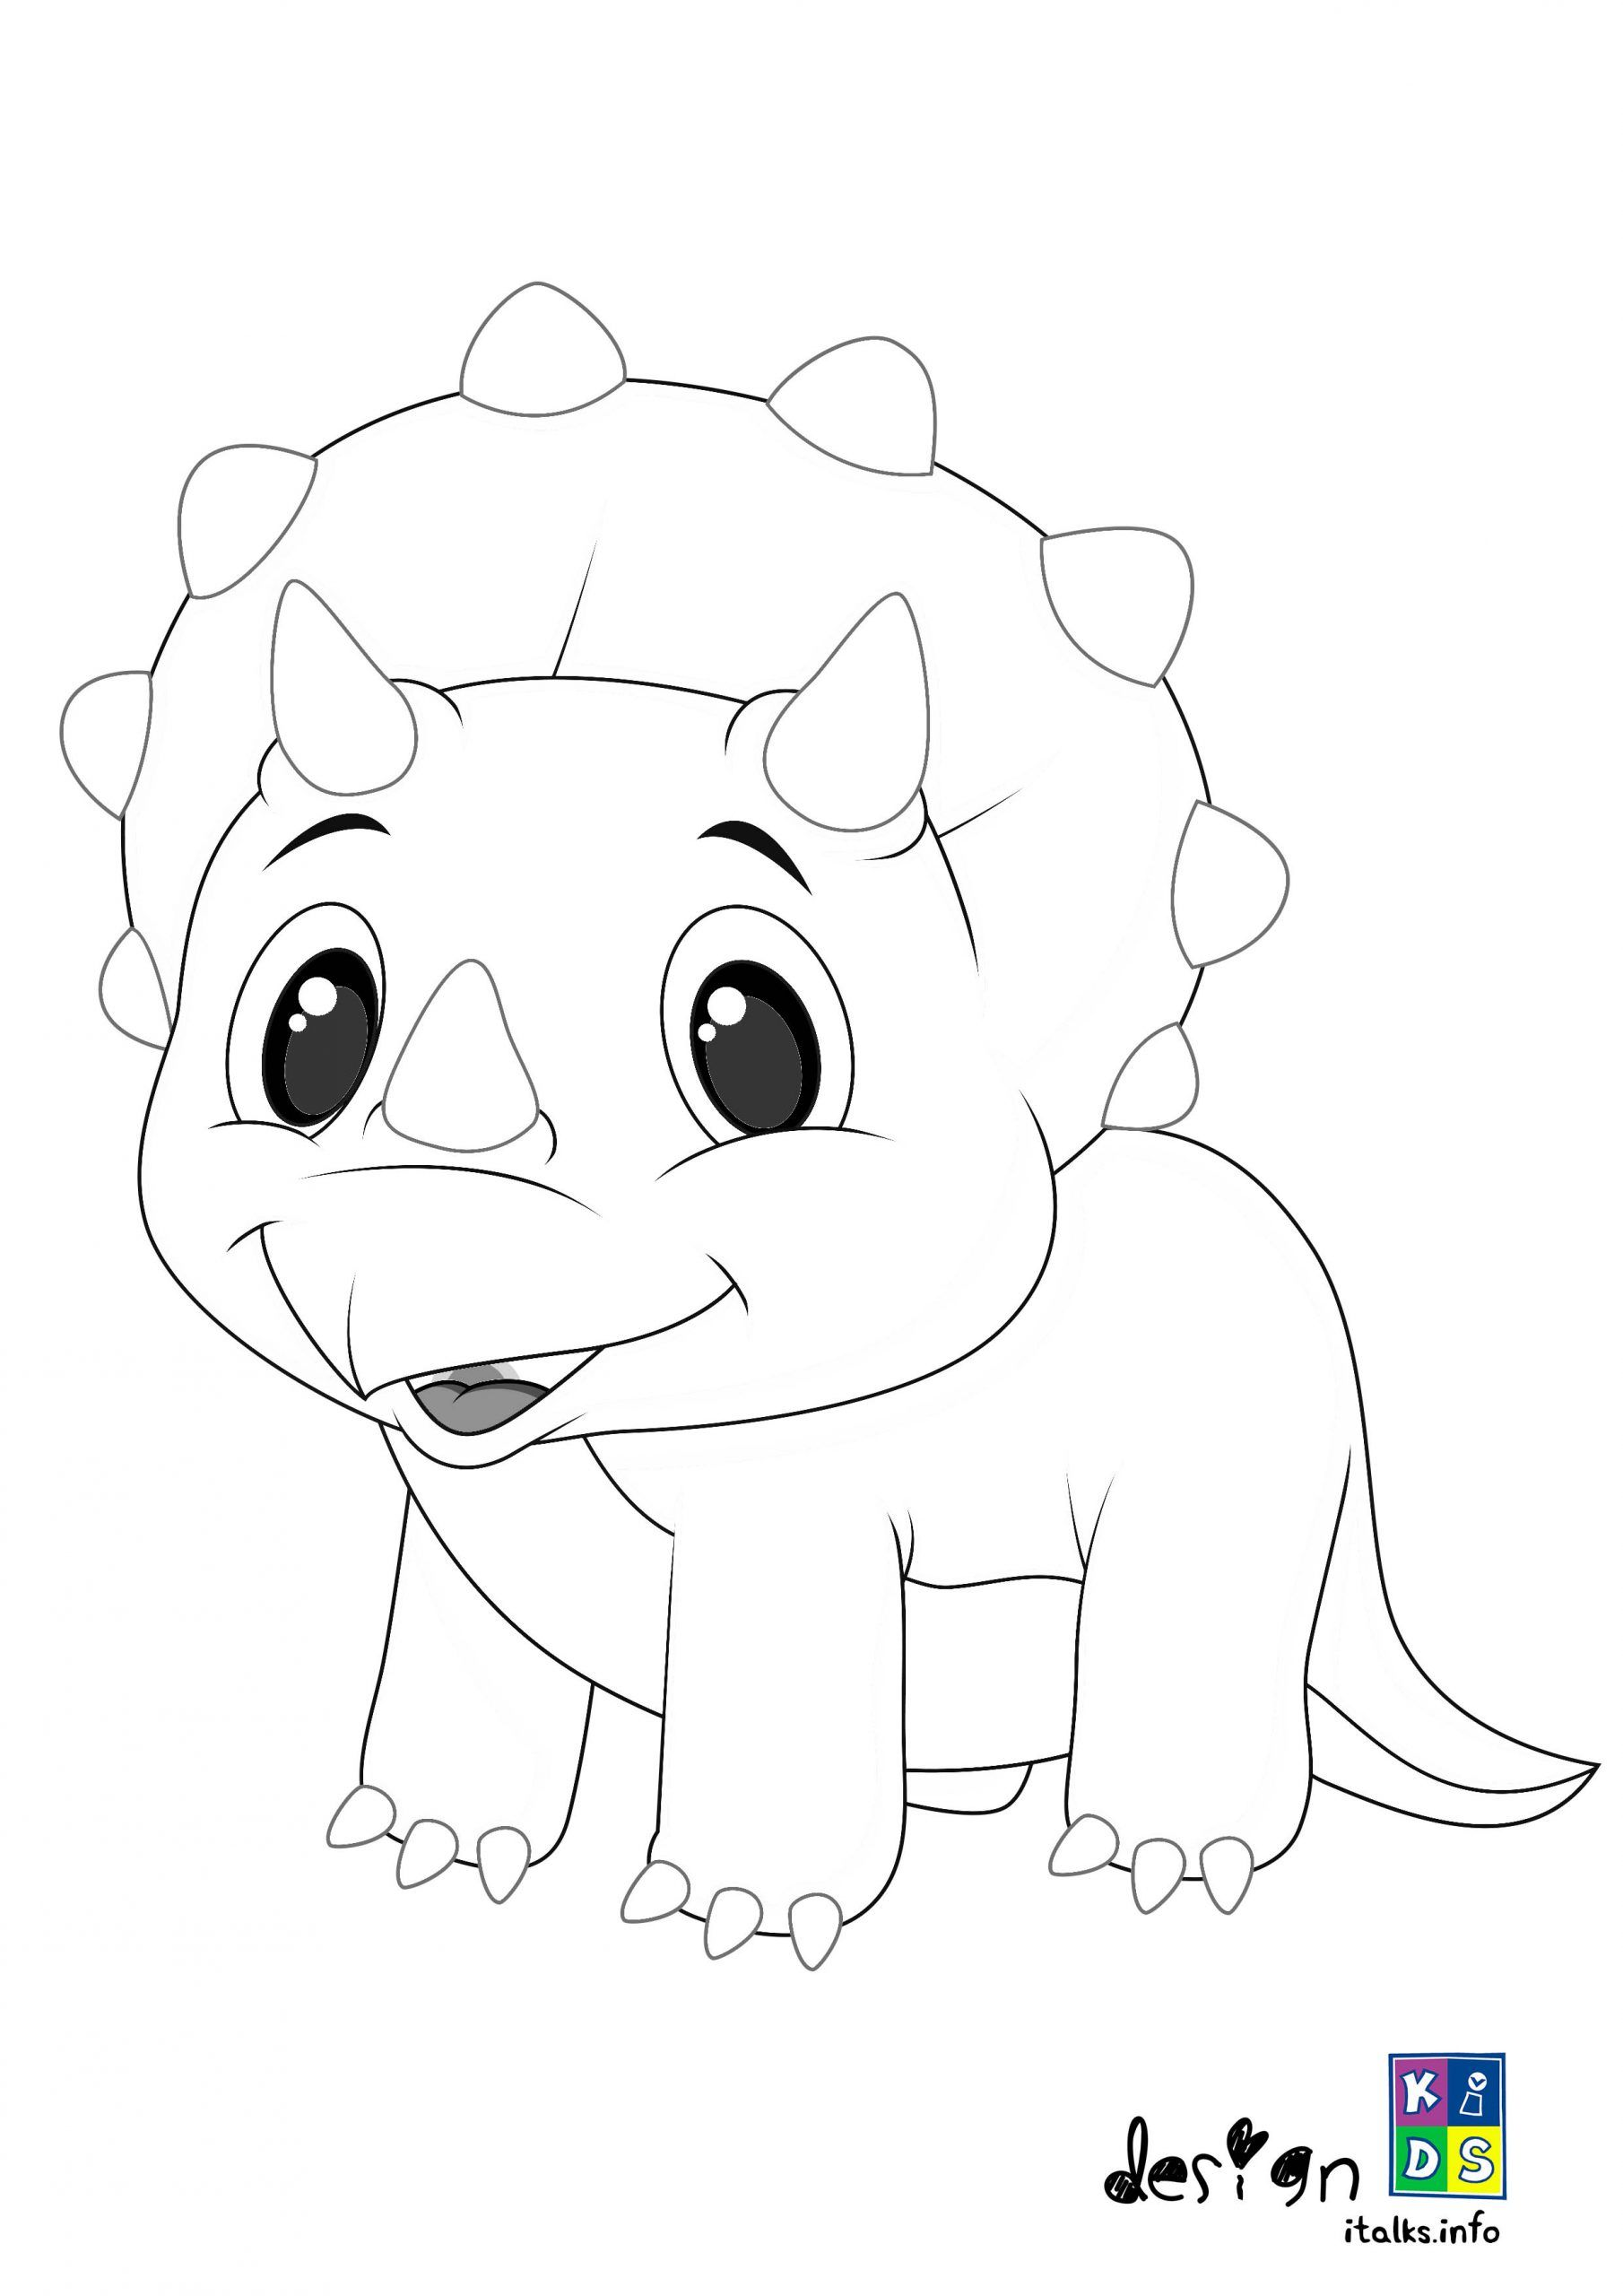 Cute Baby Triceratops Coloring Page Special For Kids in 2020